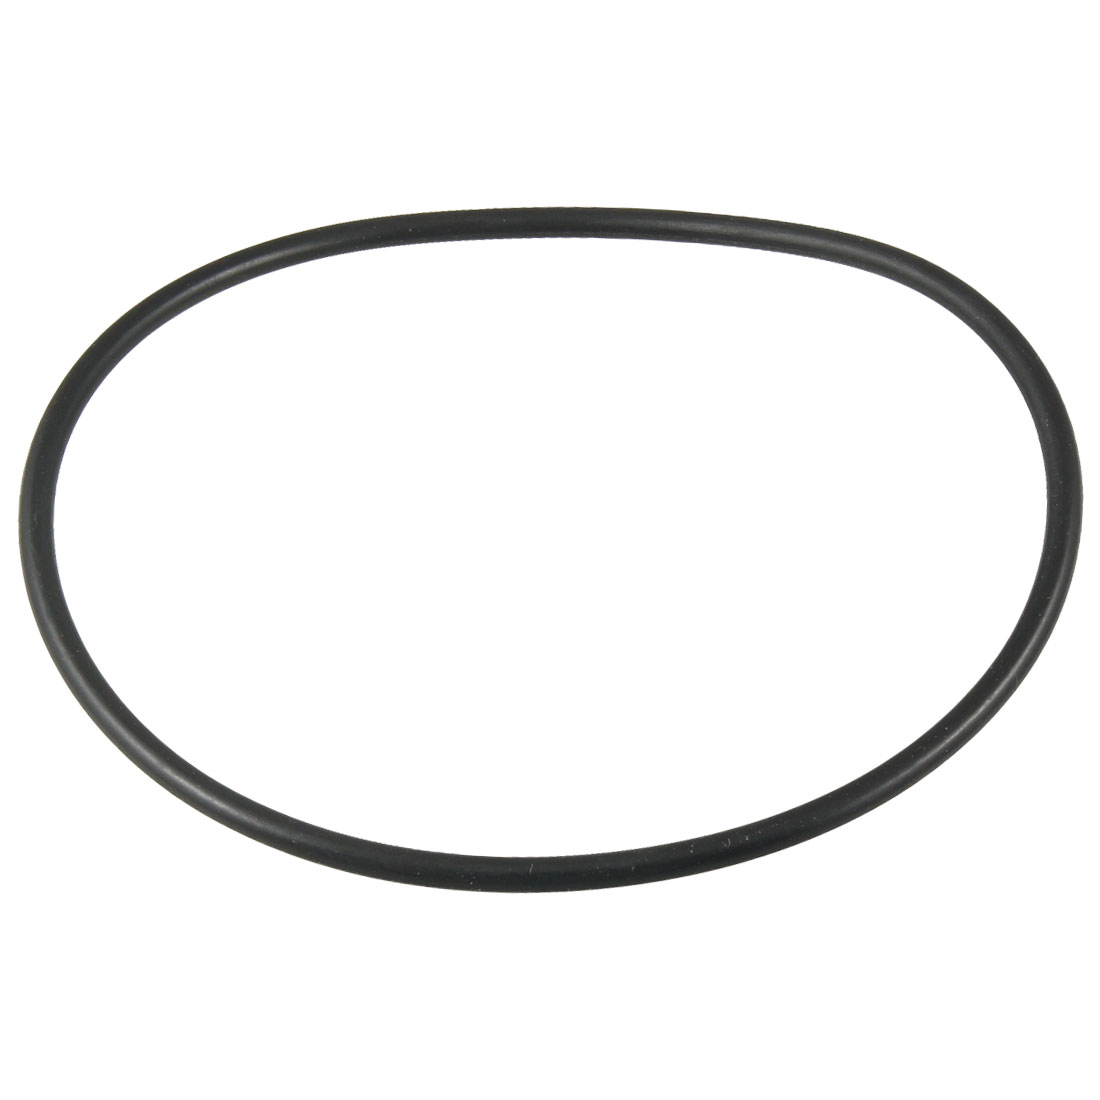 115mm x 4mm Rubber Sealing Washers Oil Filter O Rings Black